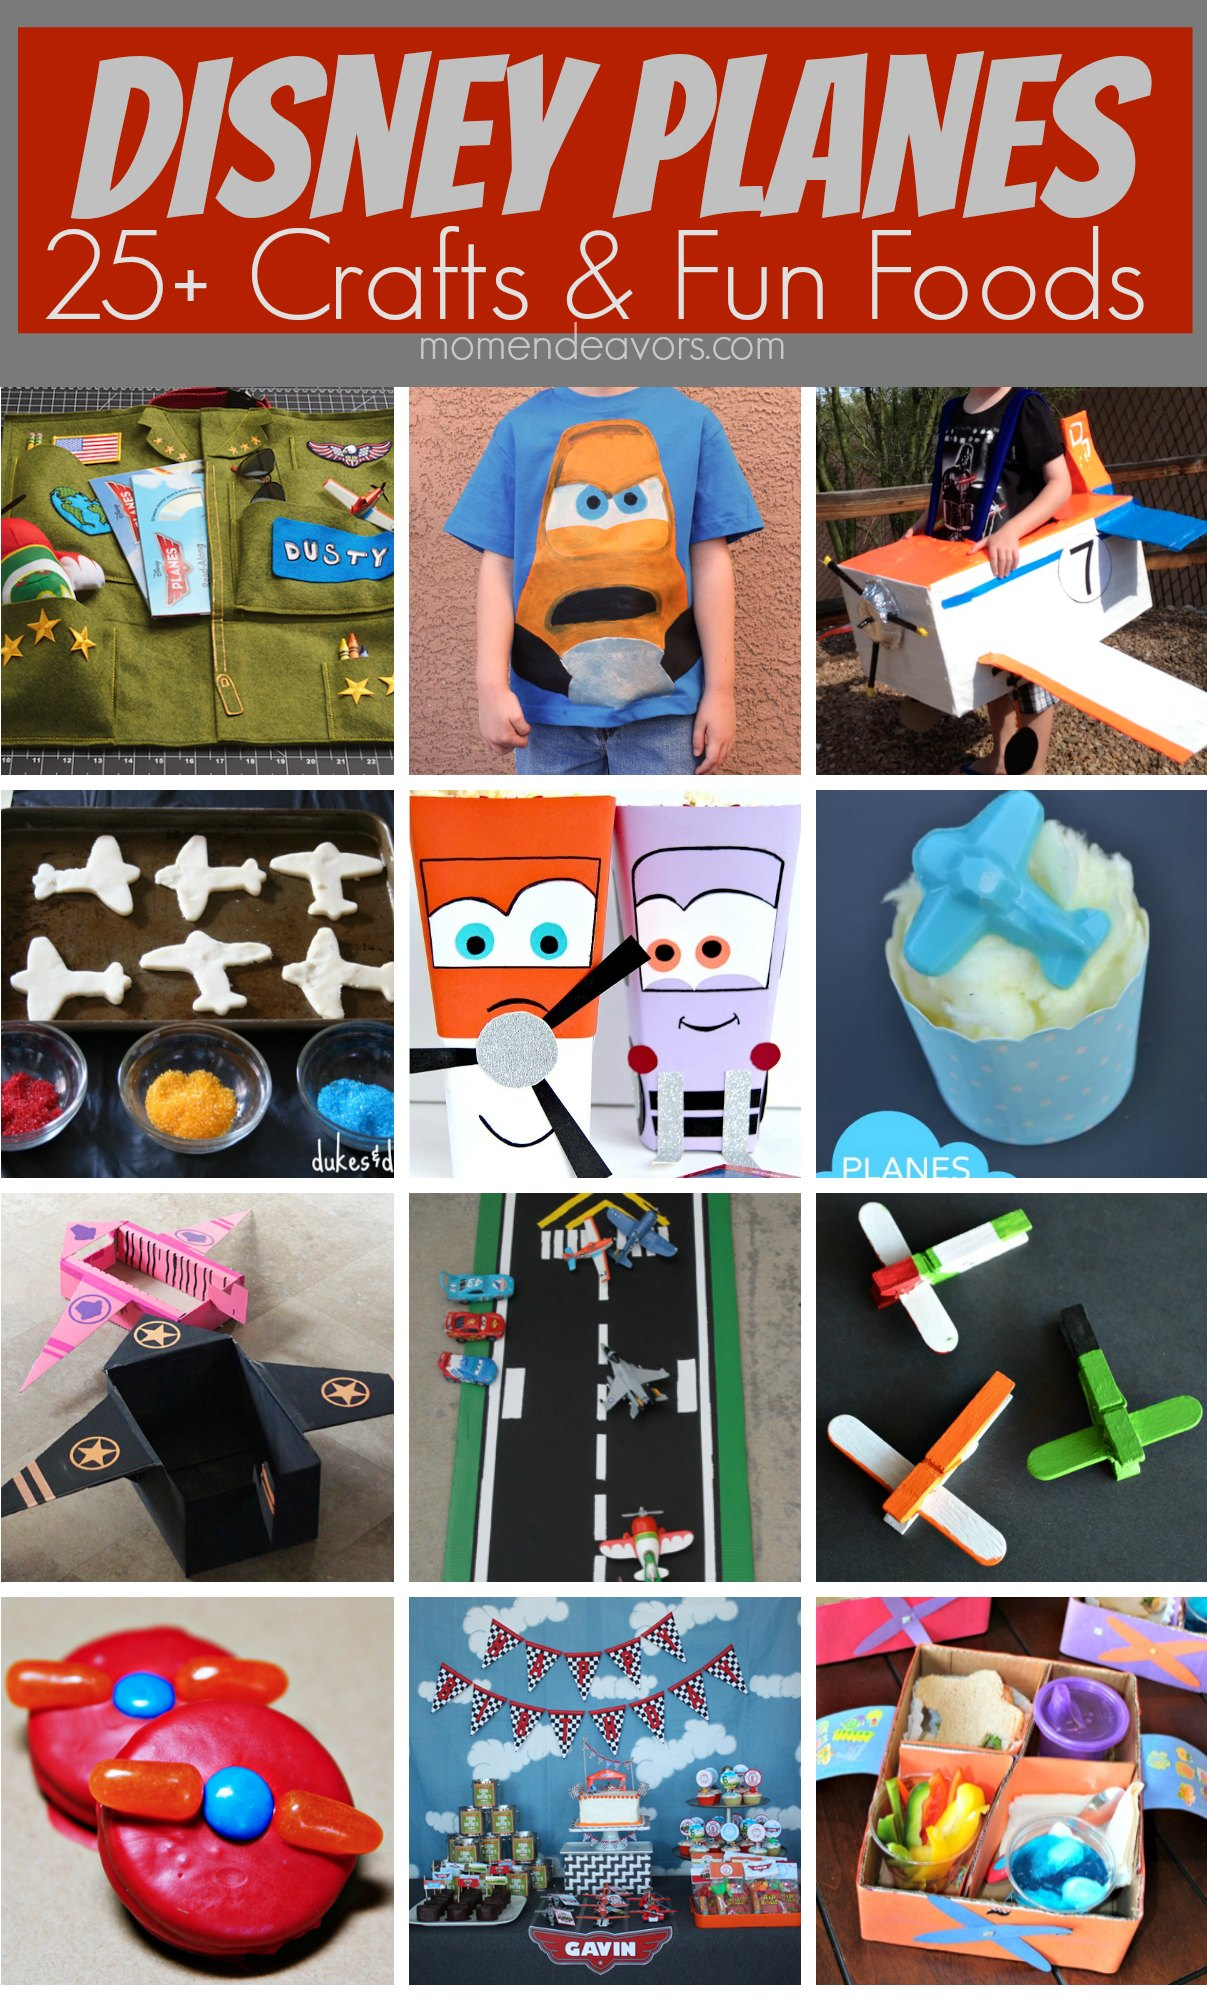 25 disney planes crafts fun food ideas for Crafts to do at a birthday party